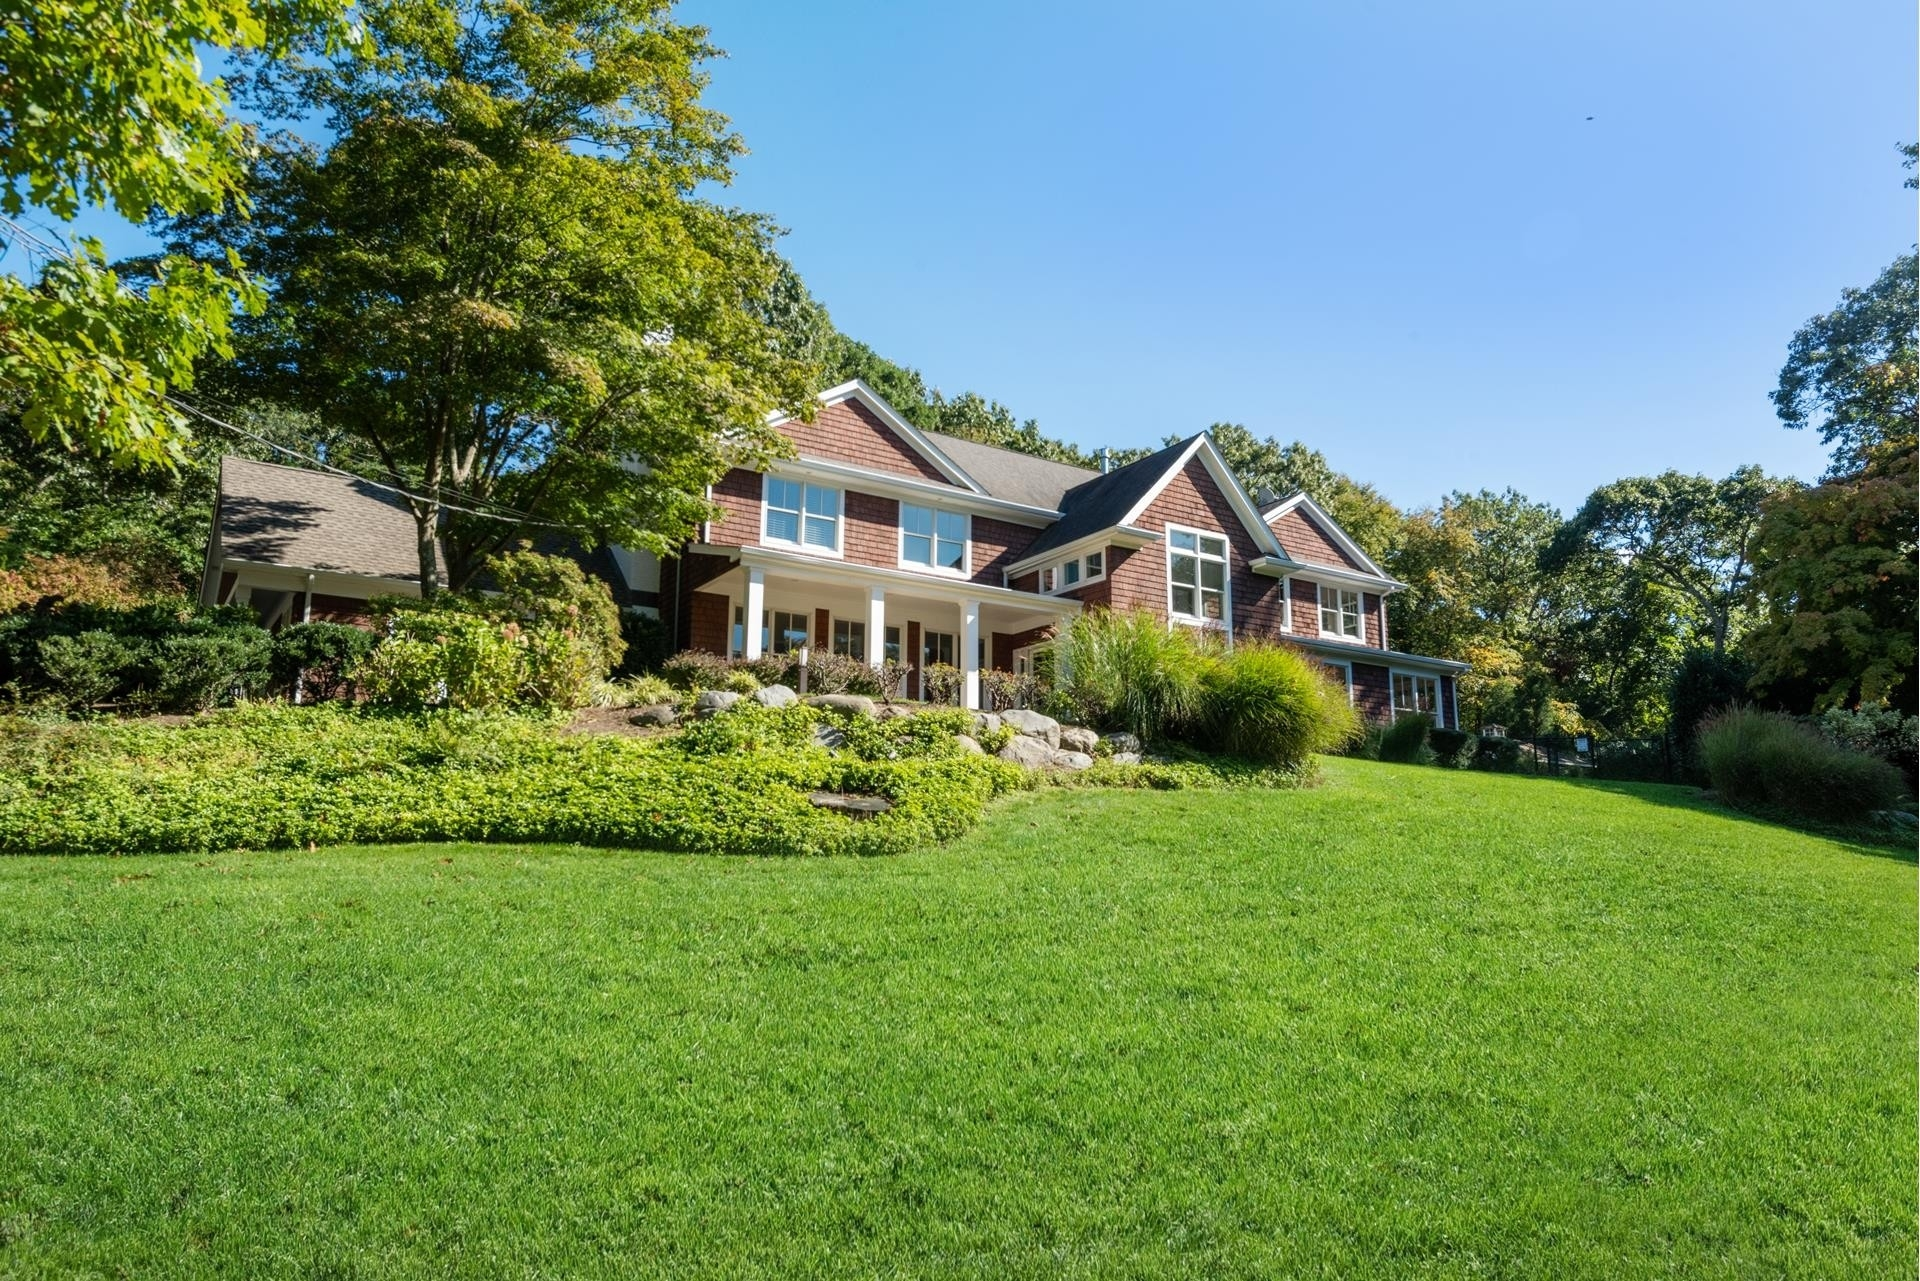 Single Family Home for Sale at Fort Salonga, Northport, NY 11768